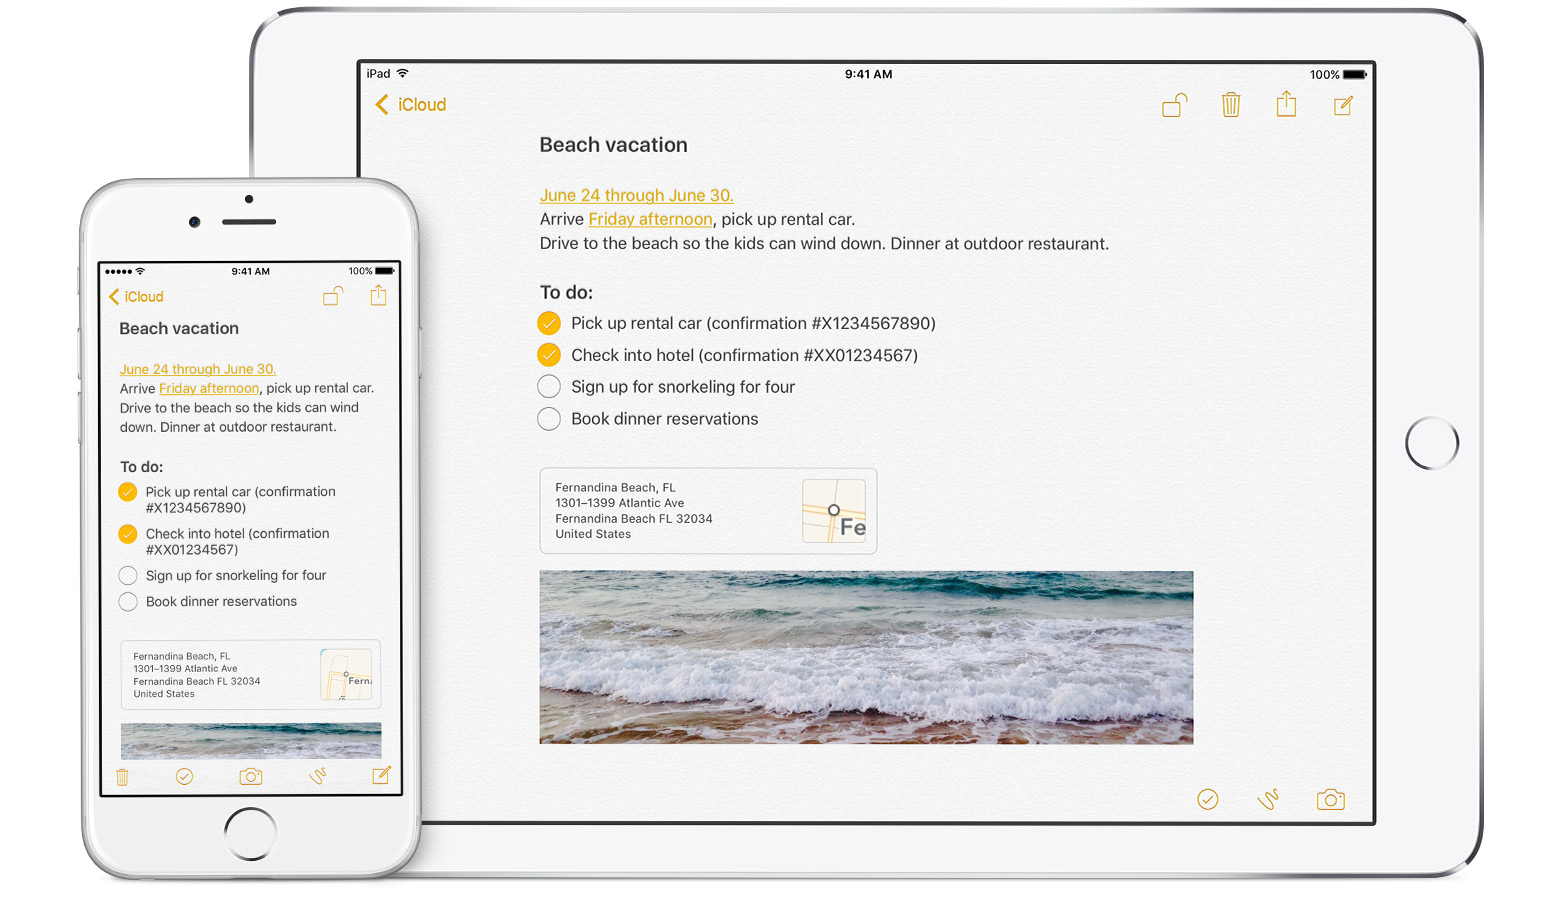 Apple Notes iOS 9